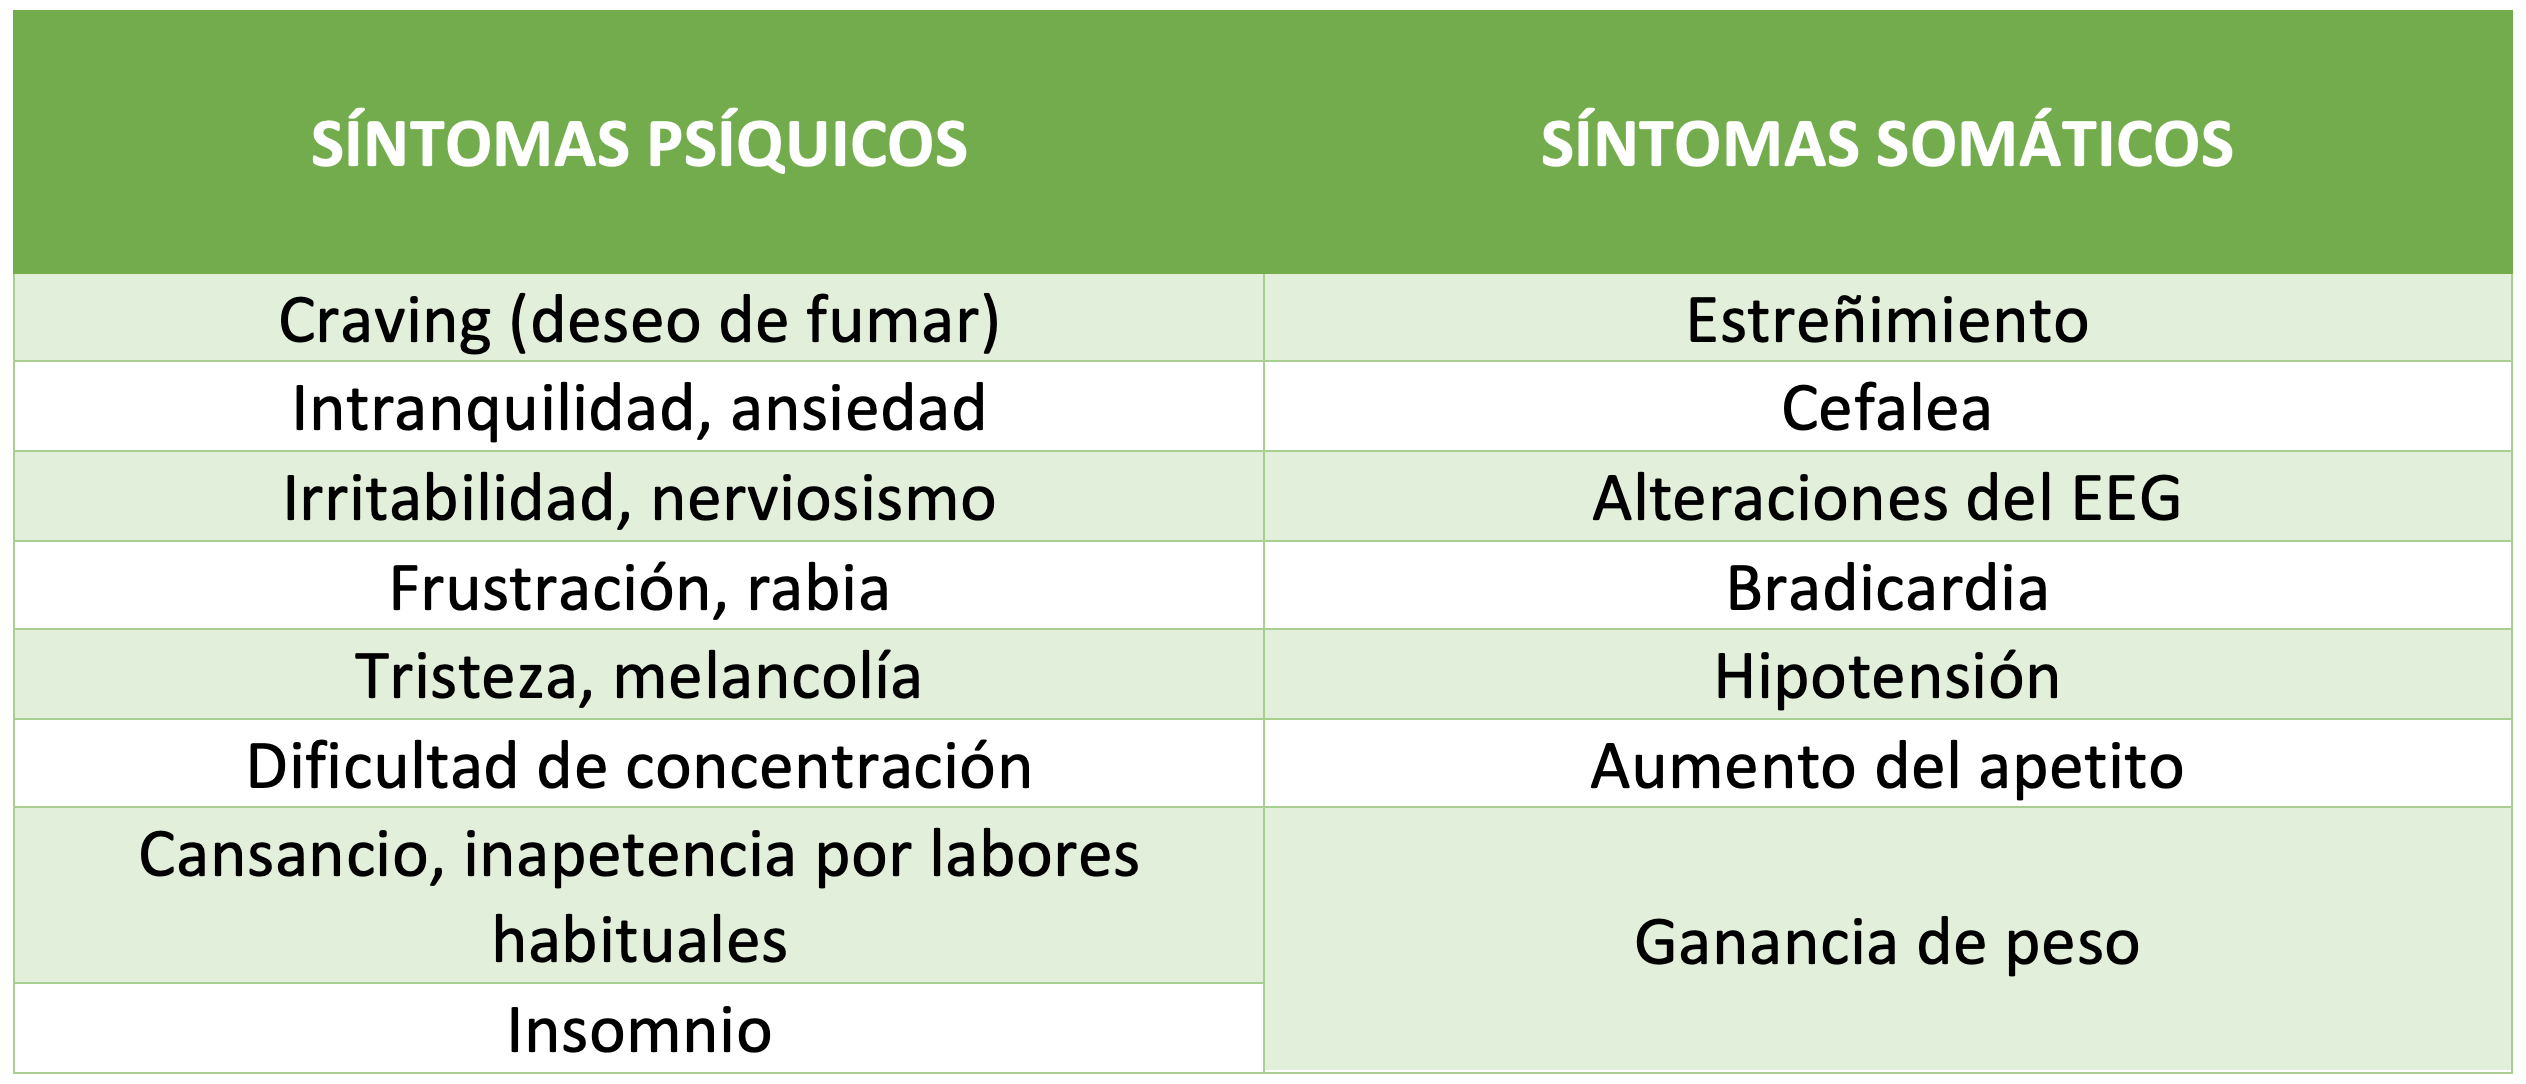 Tabla síndrome abstinencia del tabaco